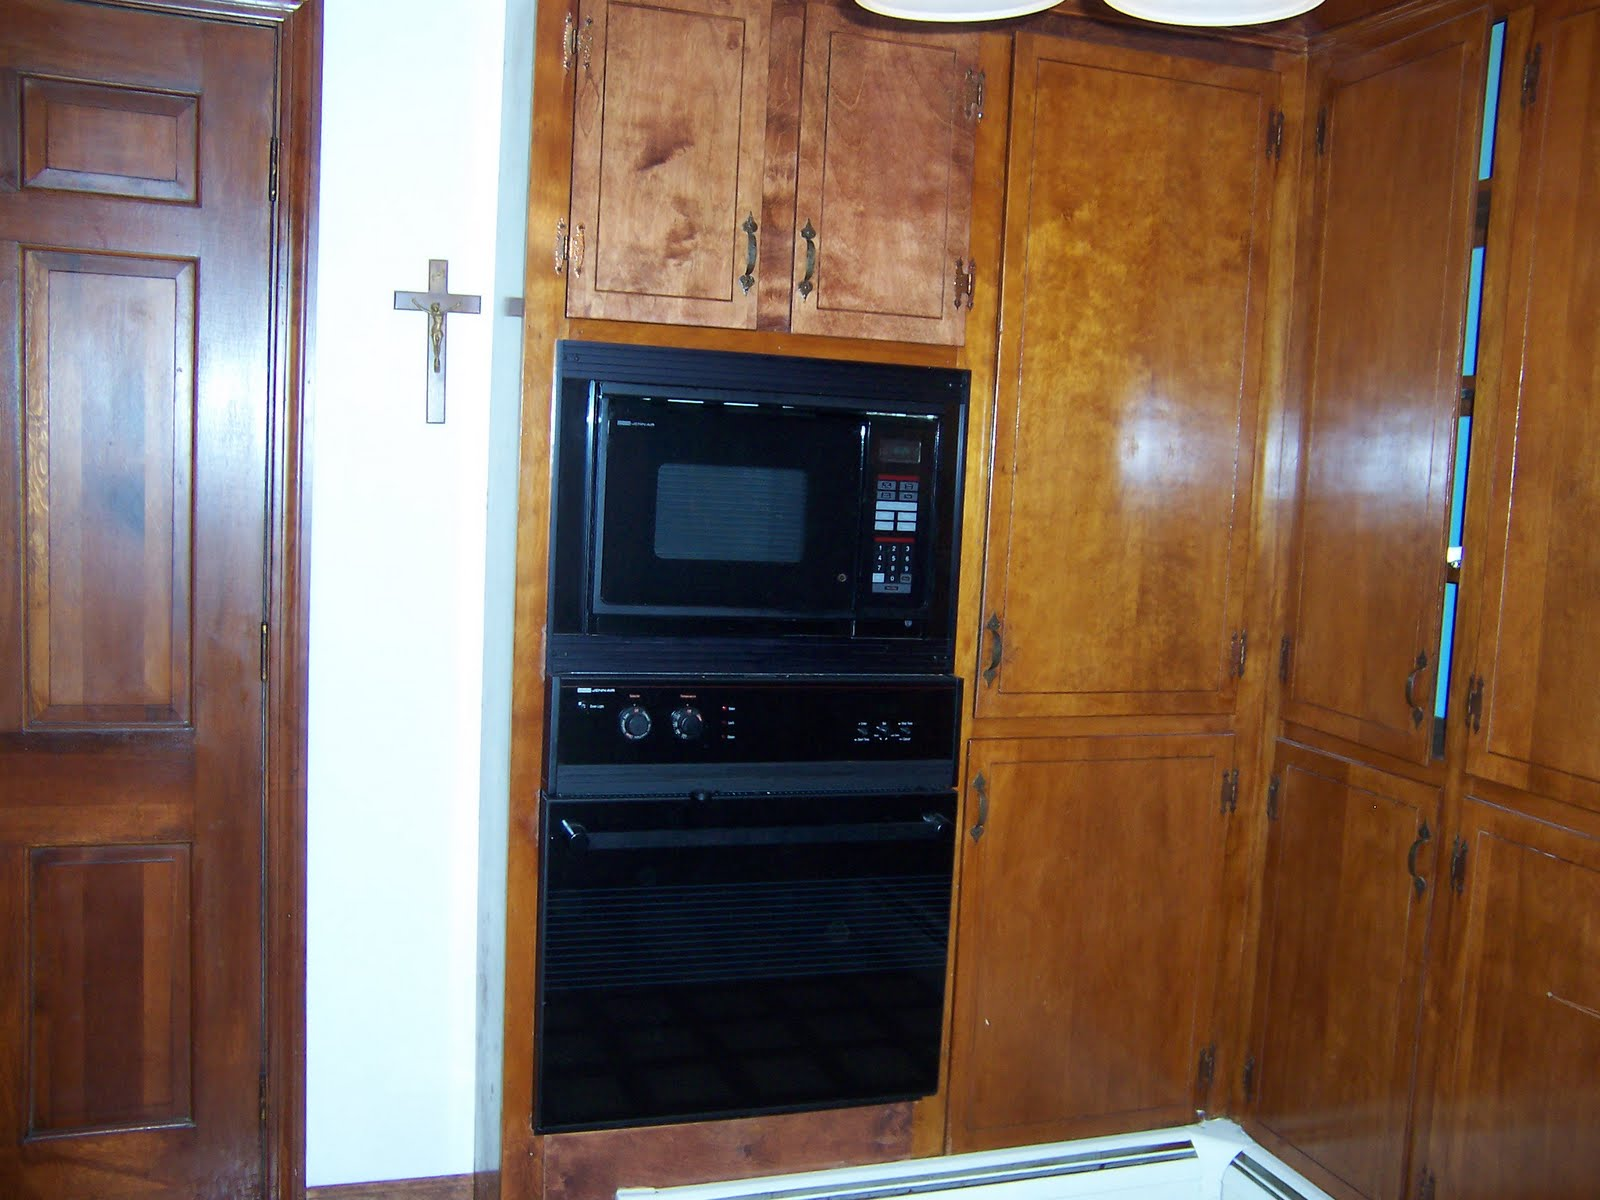 Double Wall Oven Cabinet Plans With The Monster Cabinets Gone